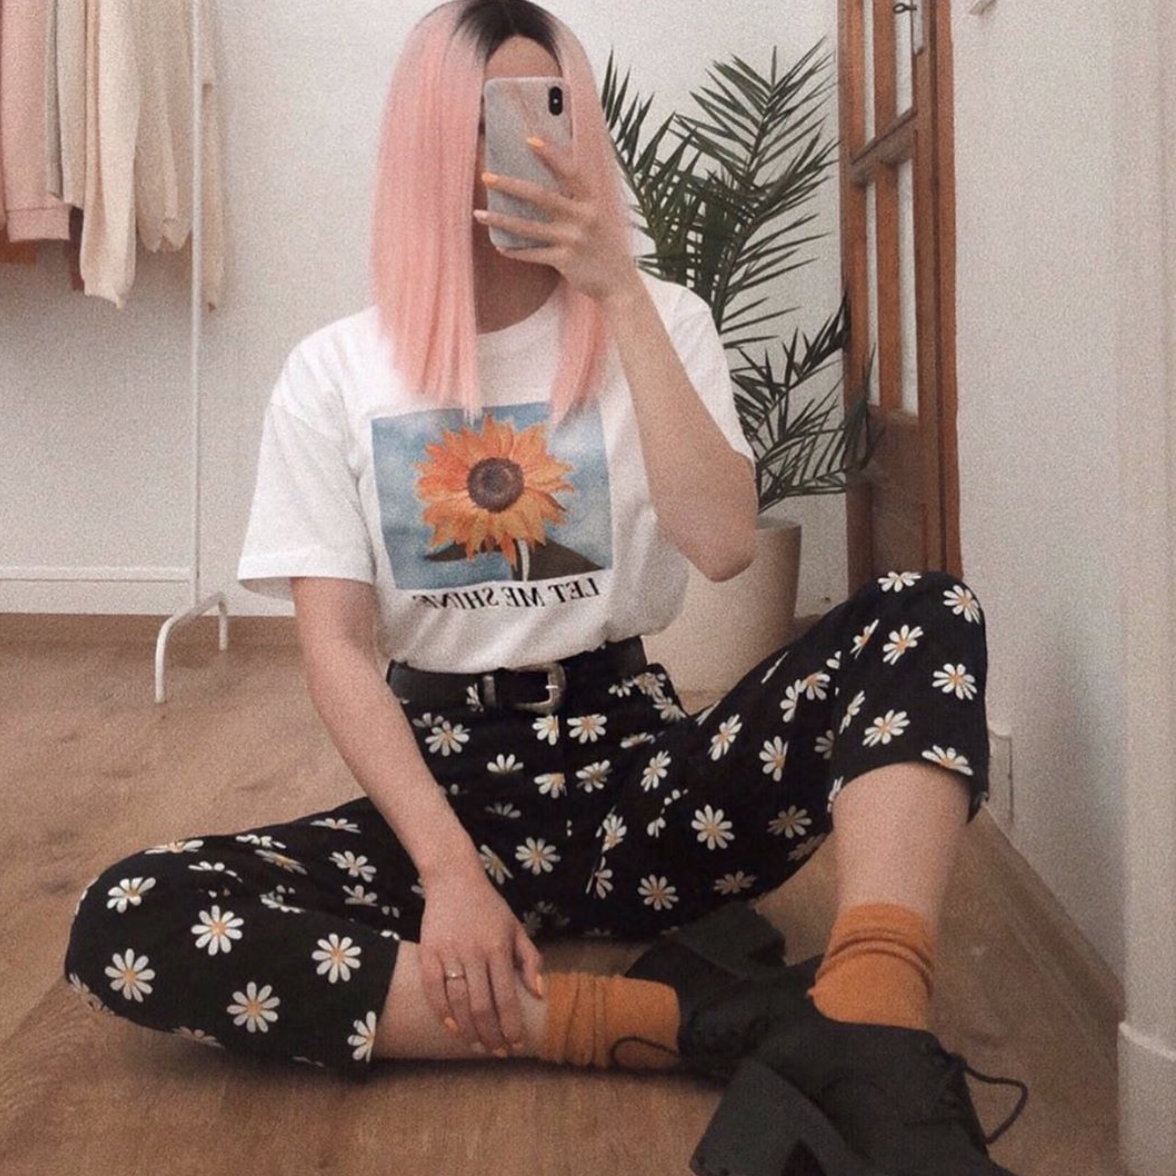 Good news: Daisy Mom Jeans are back in stock